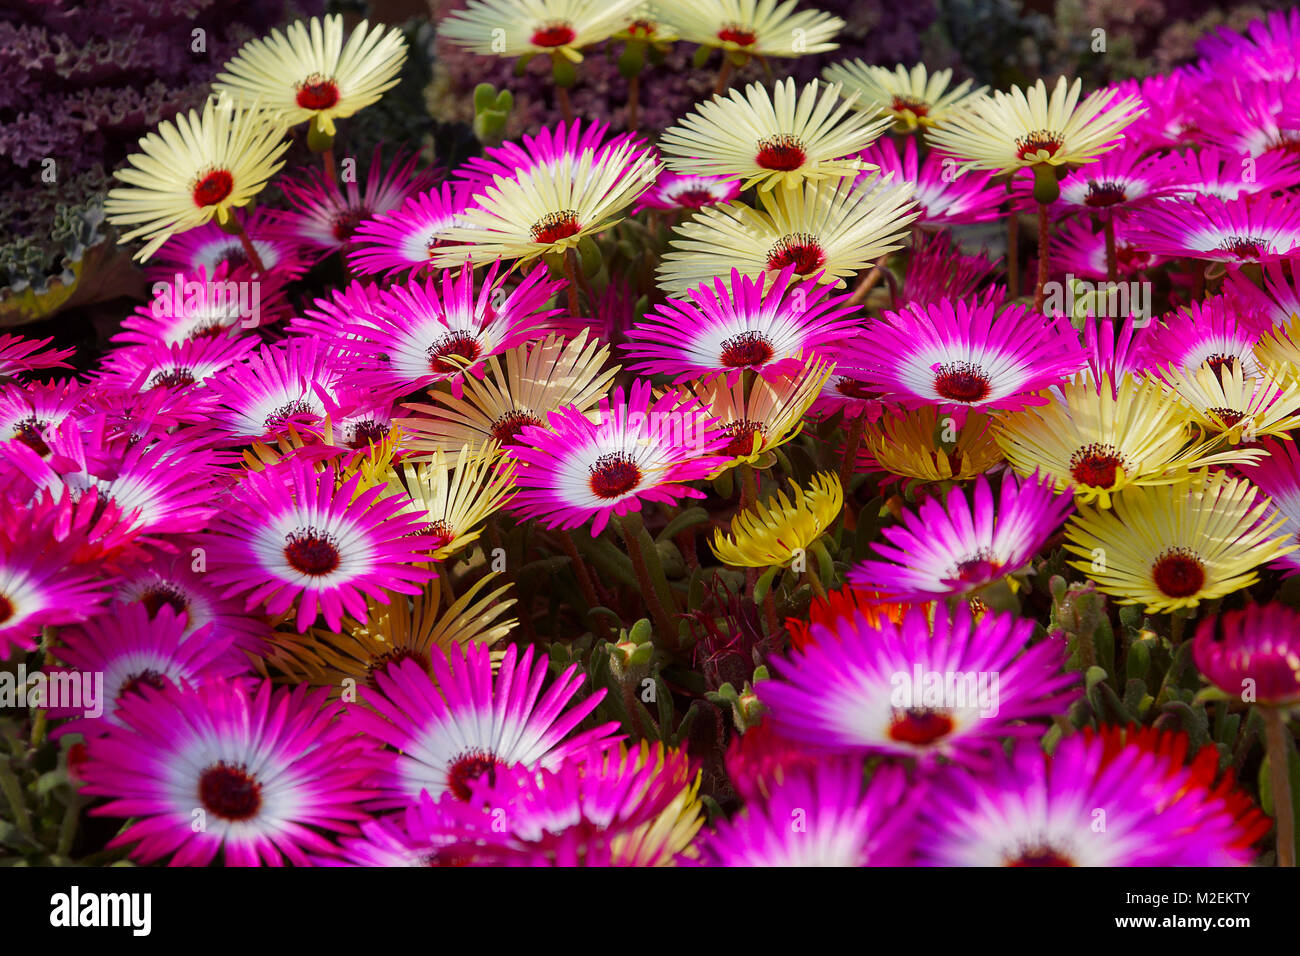 Livingston Daisy. Dorantheanthus belidiformis, belongs to ice plant family, native of South Africa - Stock Image